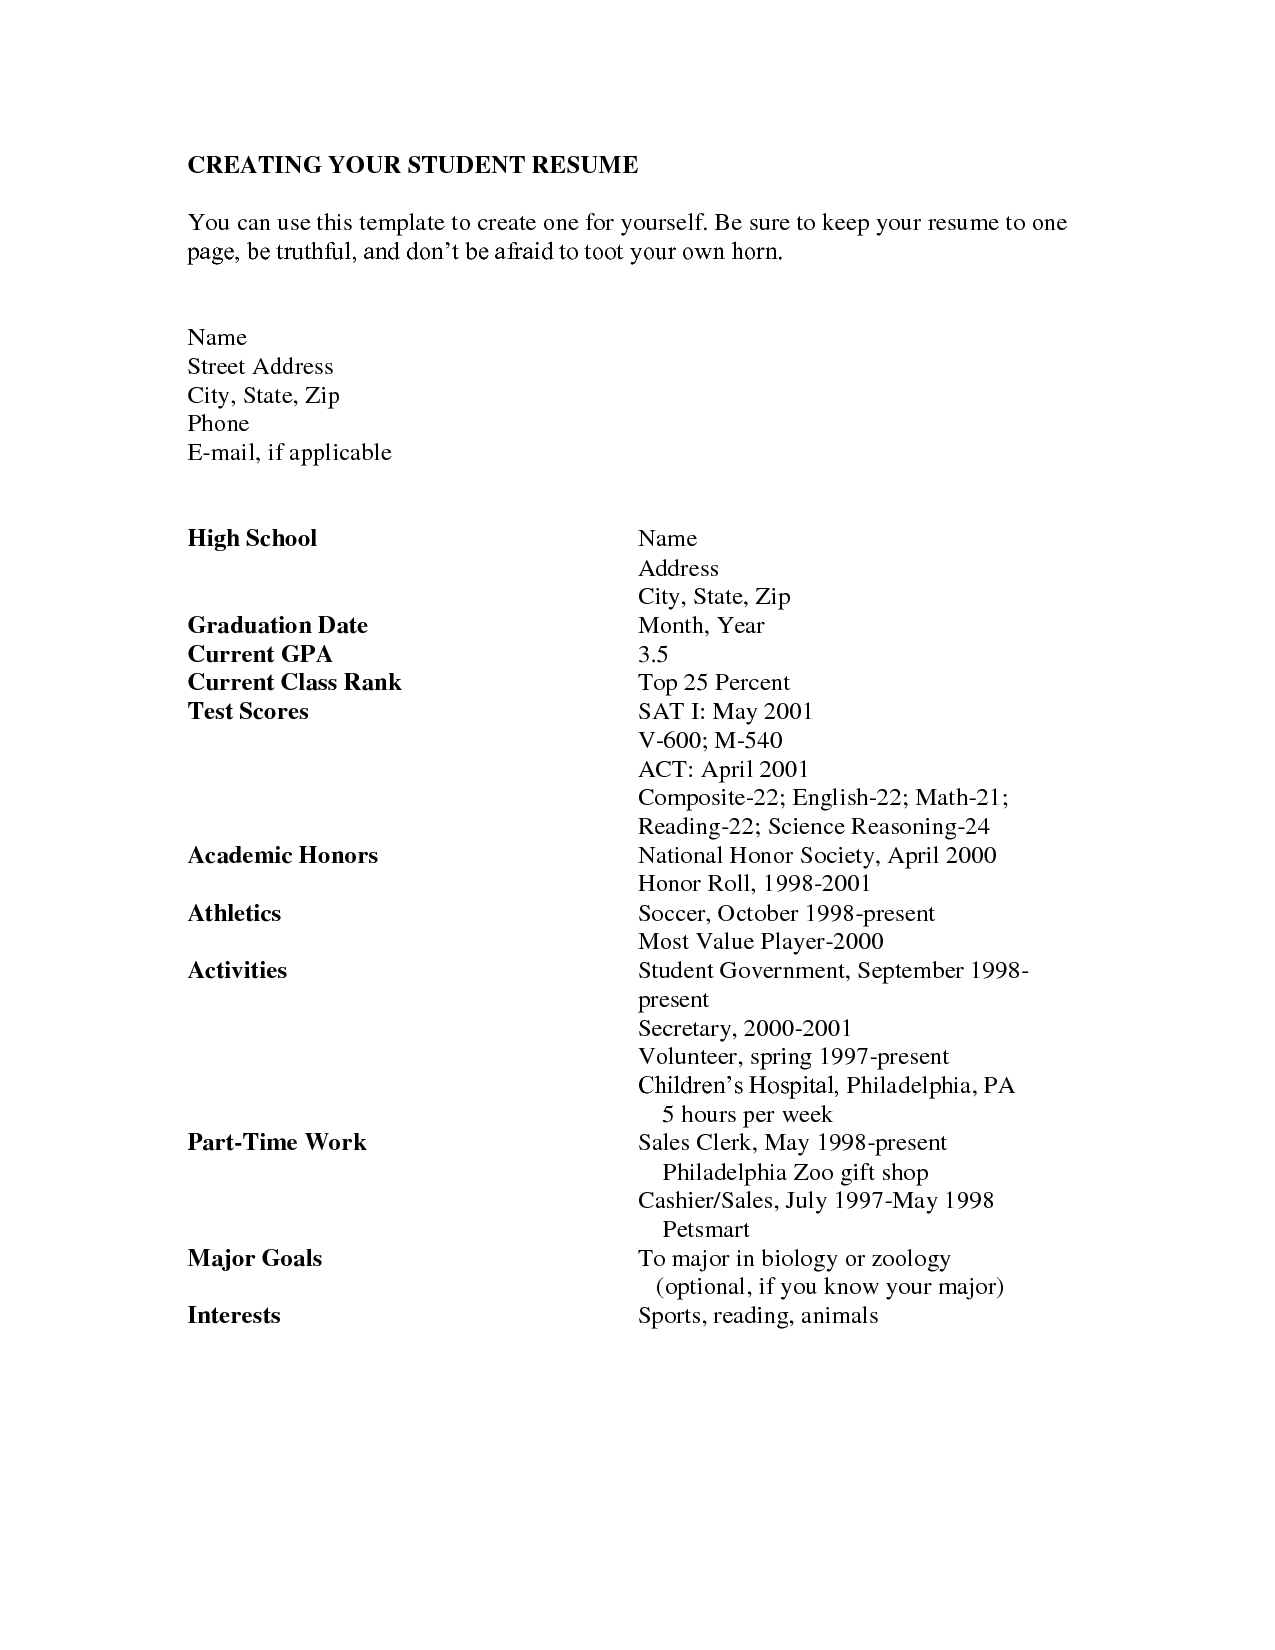 Resume Templates For High School Students High School Resume Academic Resume Builder Resume Templates  Http